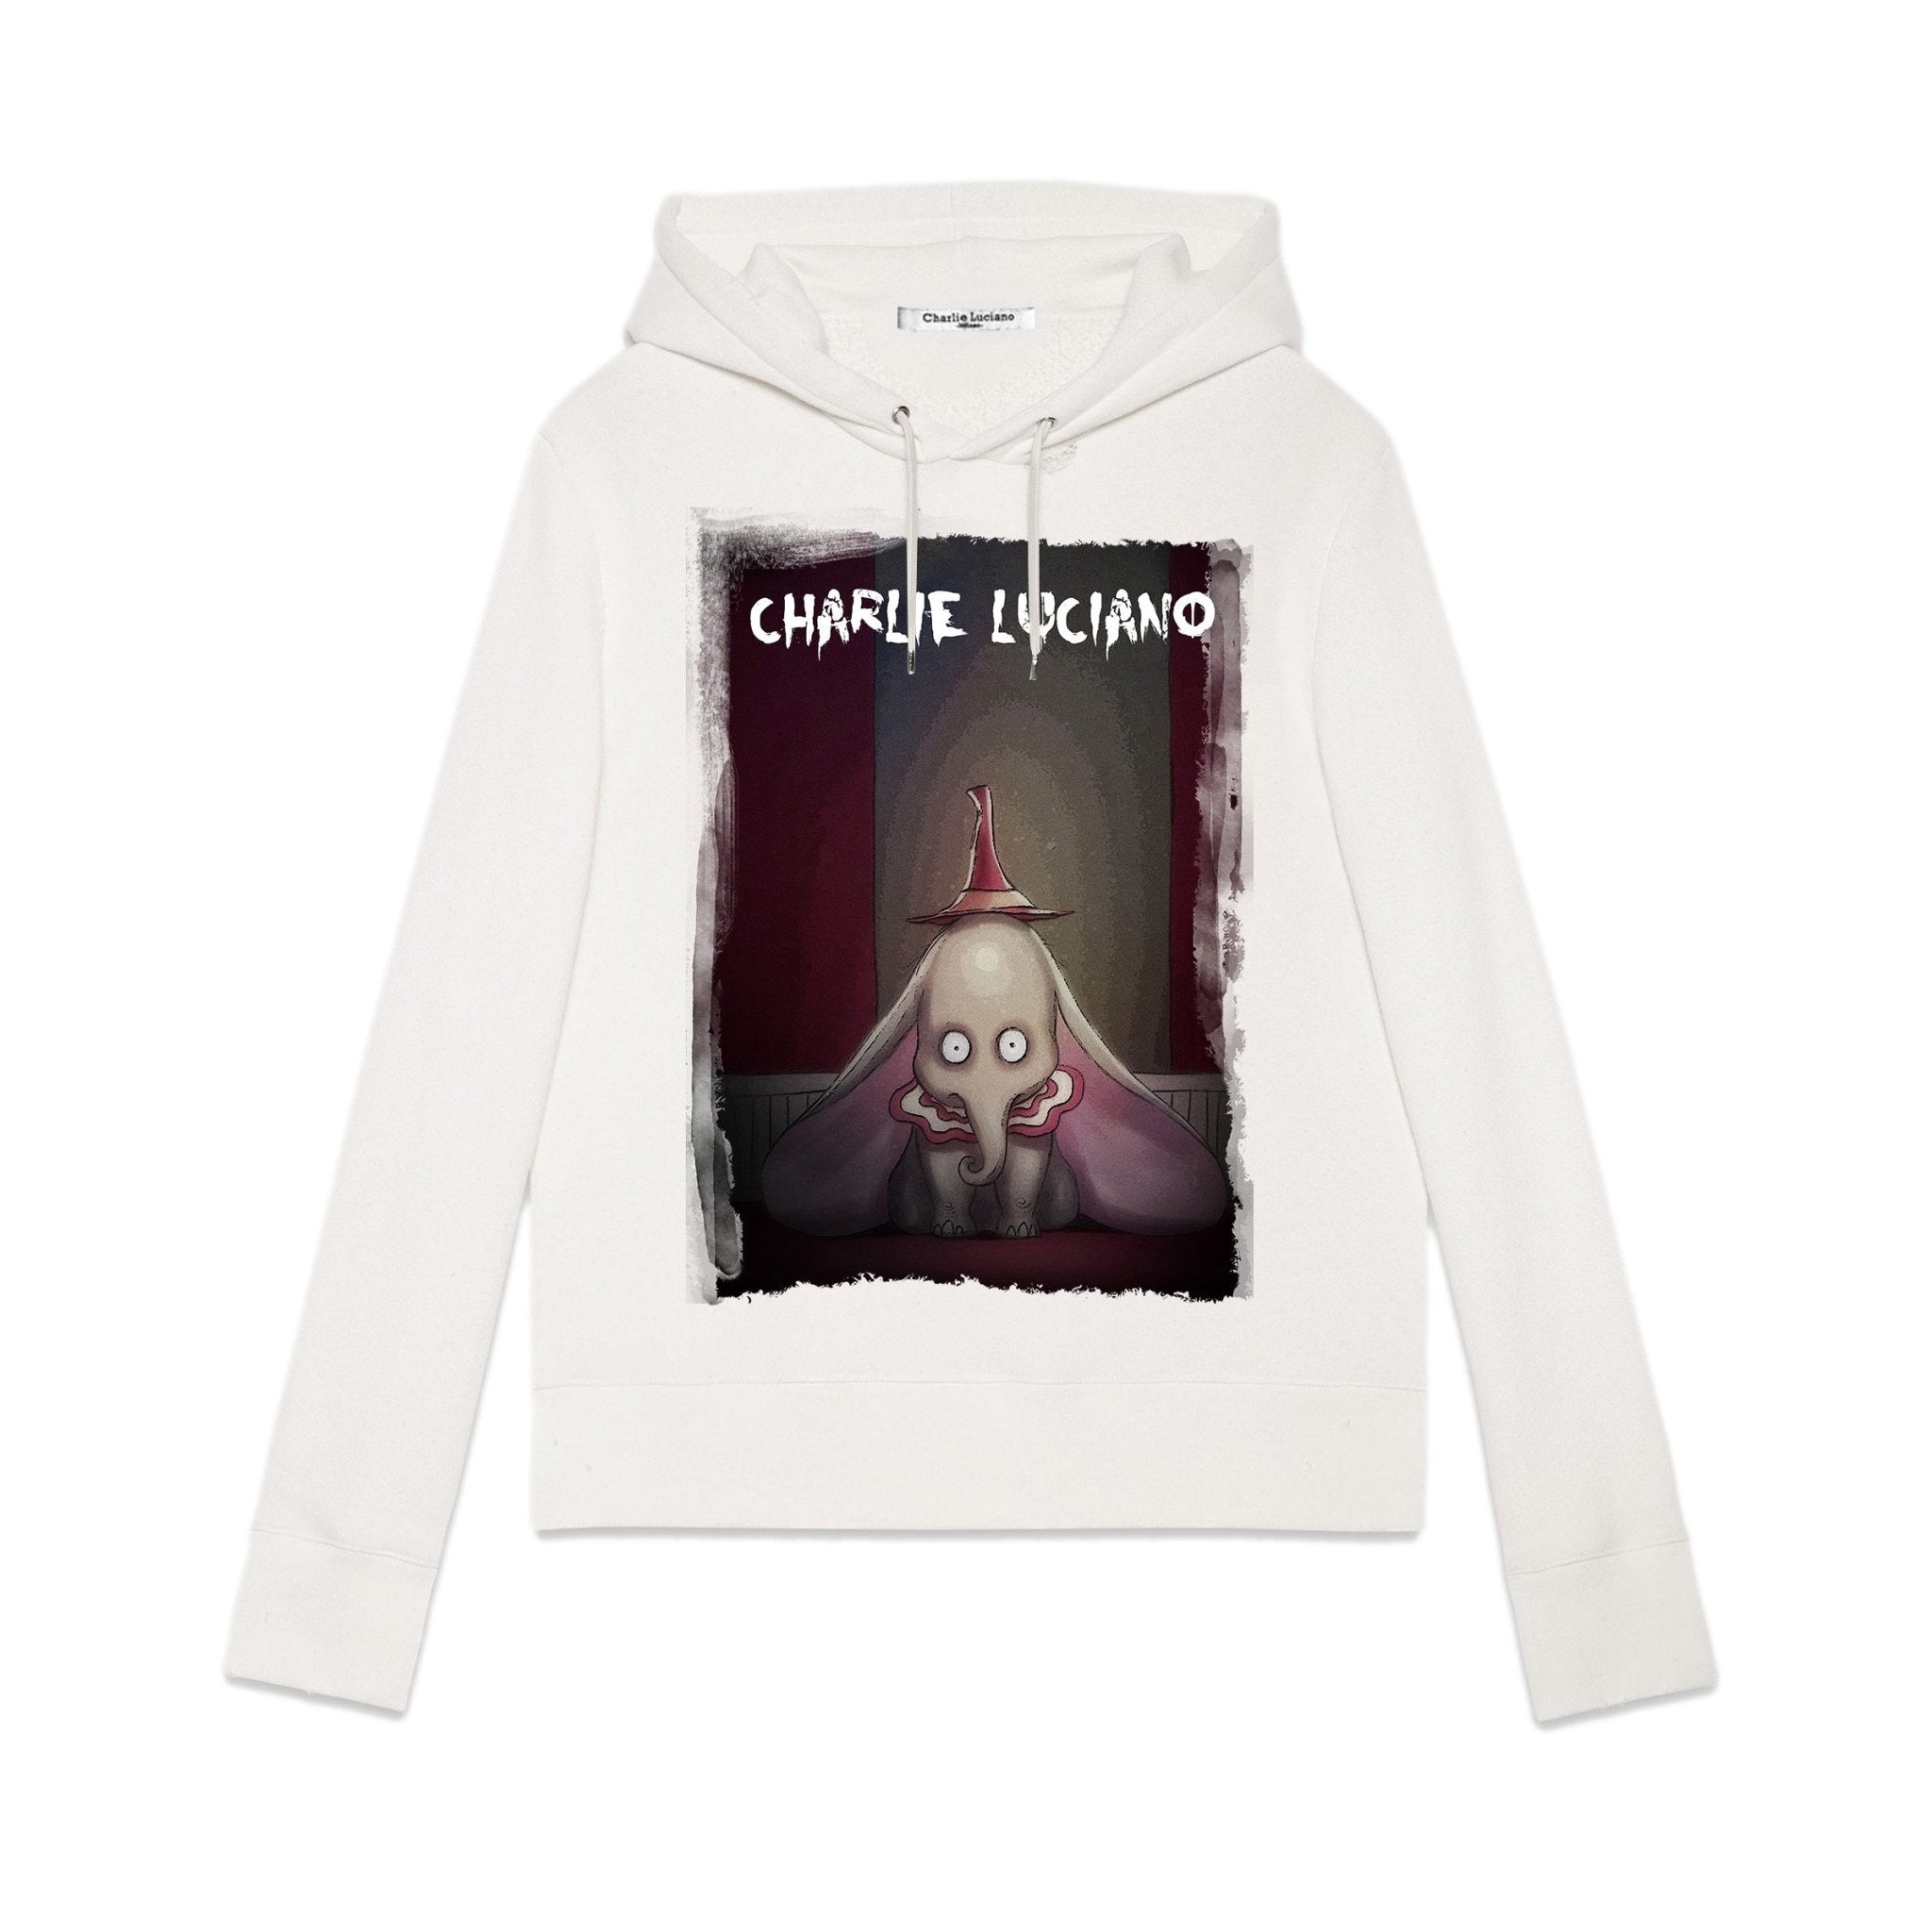 CHARLIE LUCIANO 'Dumbo' Hoodie | MADA IN CHINA